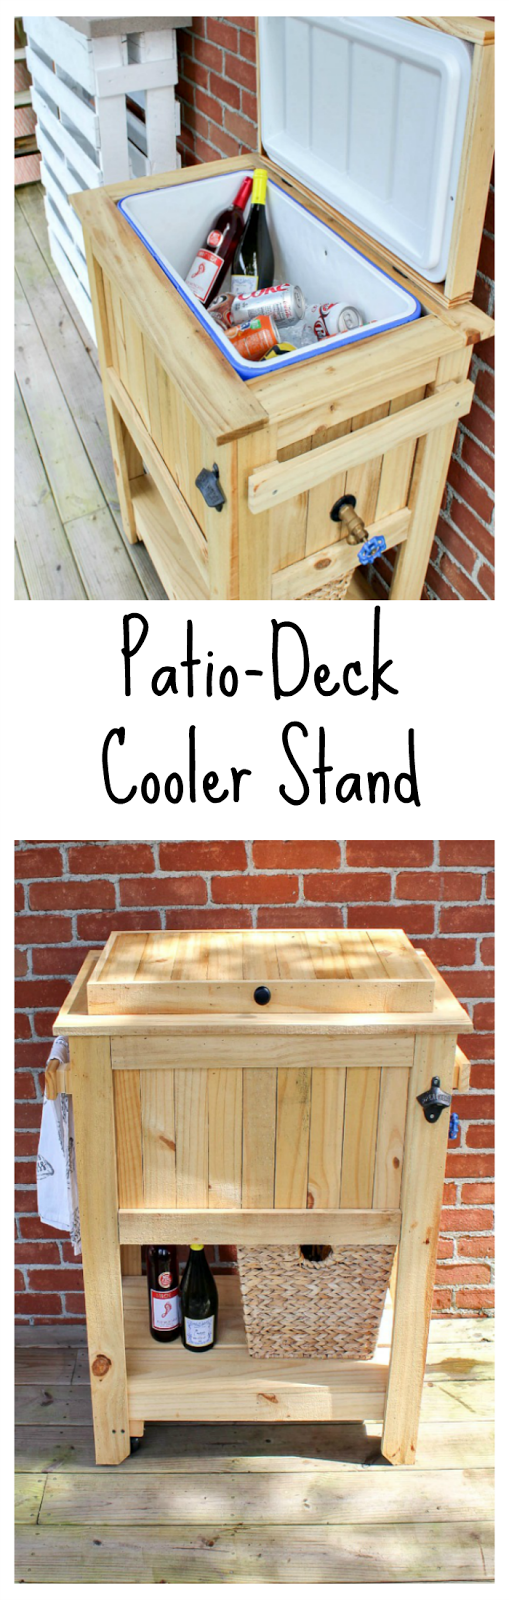 Patio/Deck Cooler Stand Reveal  Sweet Parrish Place